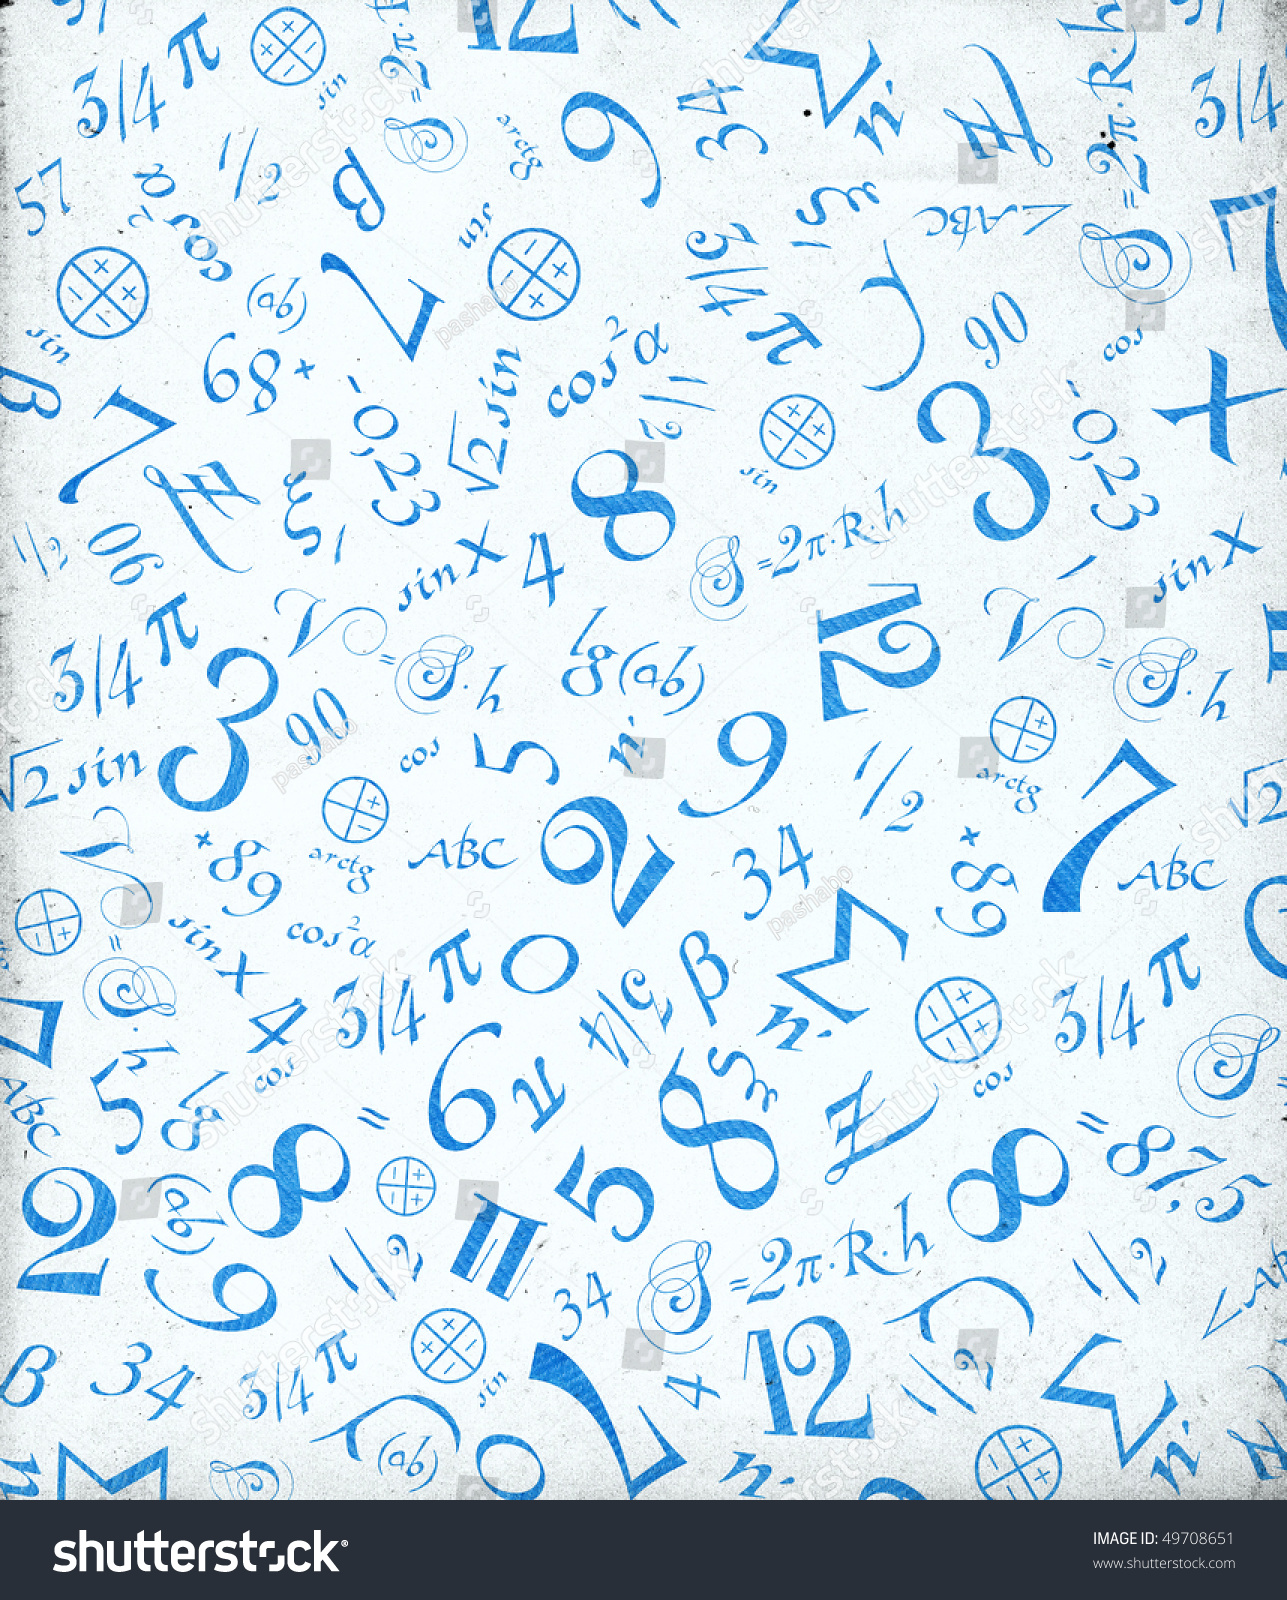 mathematical symbols background stock photo (edit now) 49708651